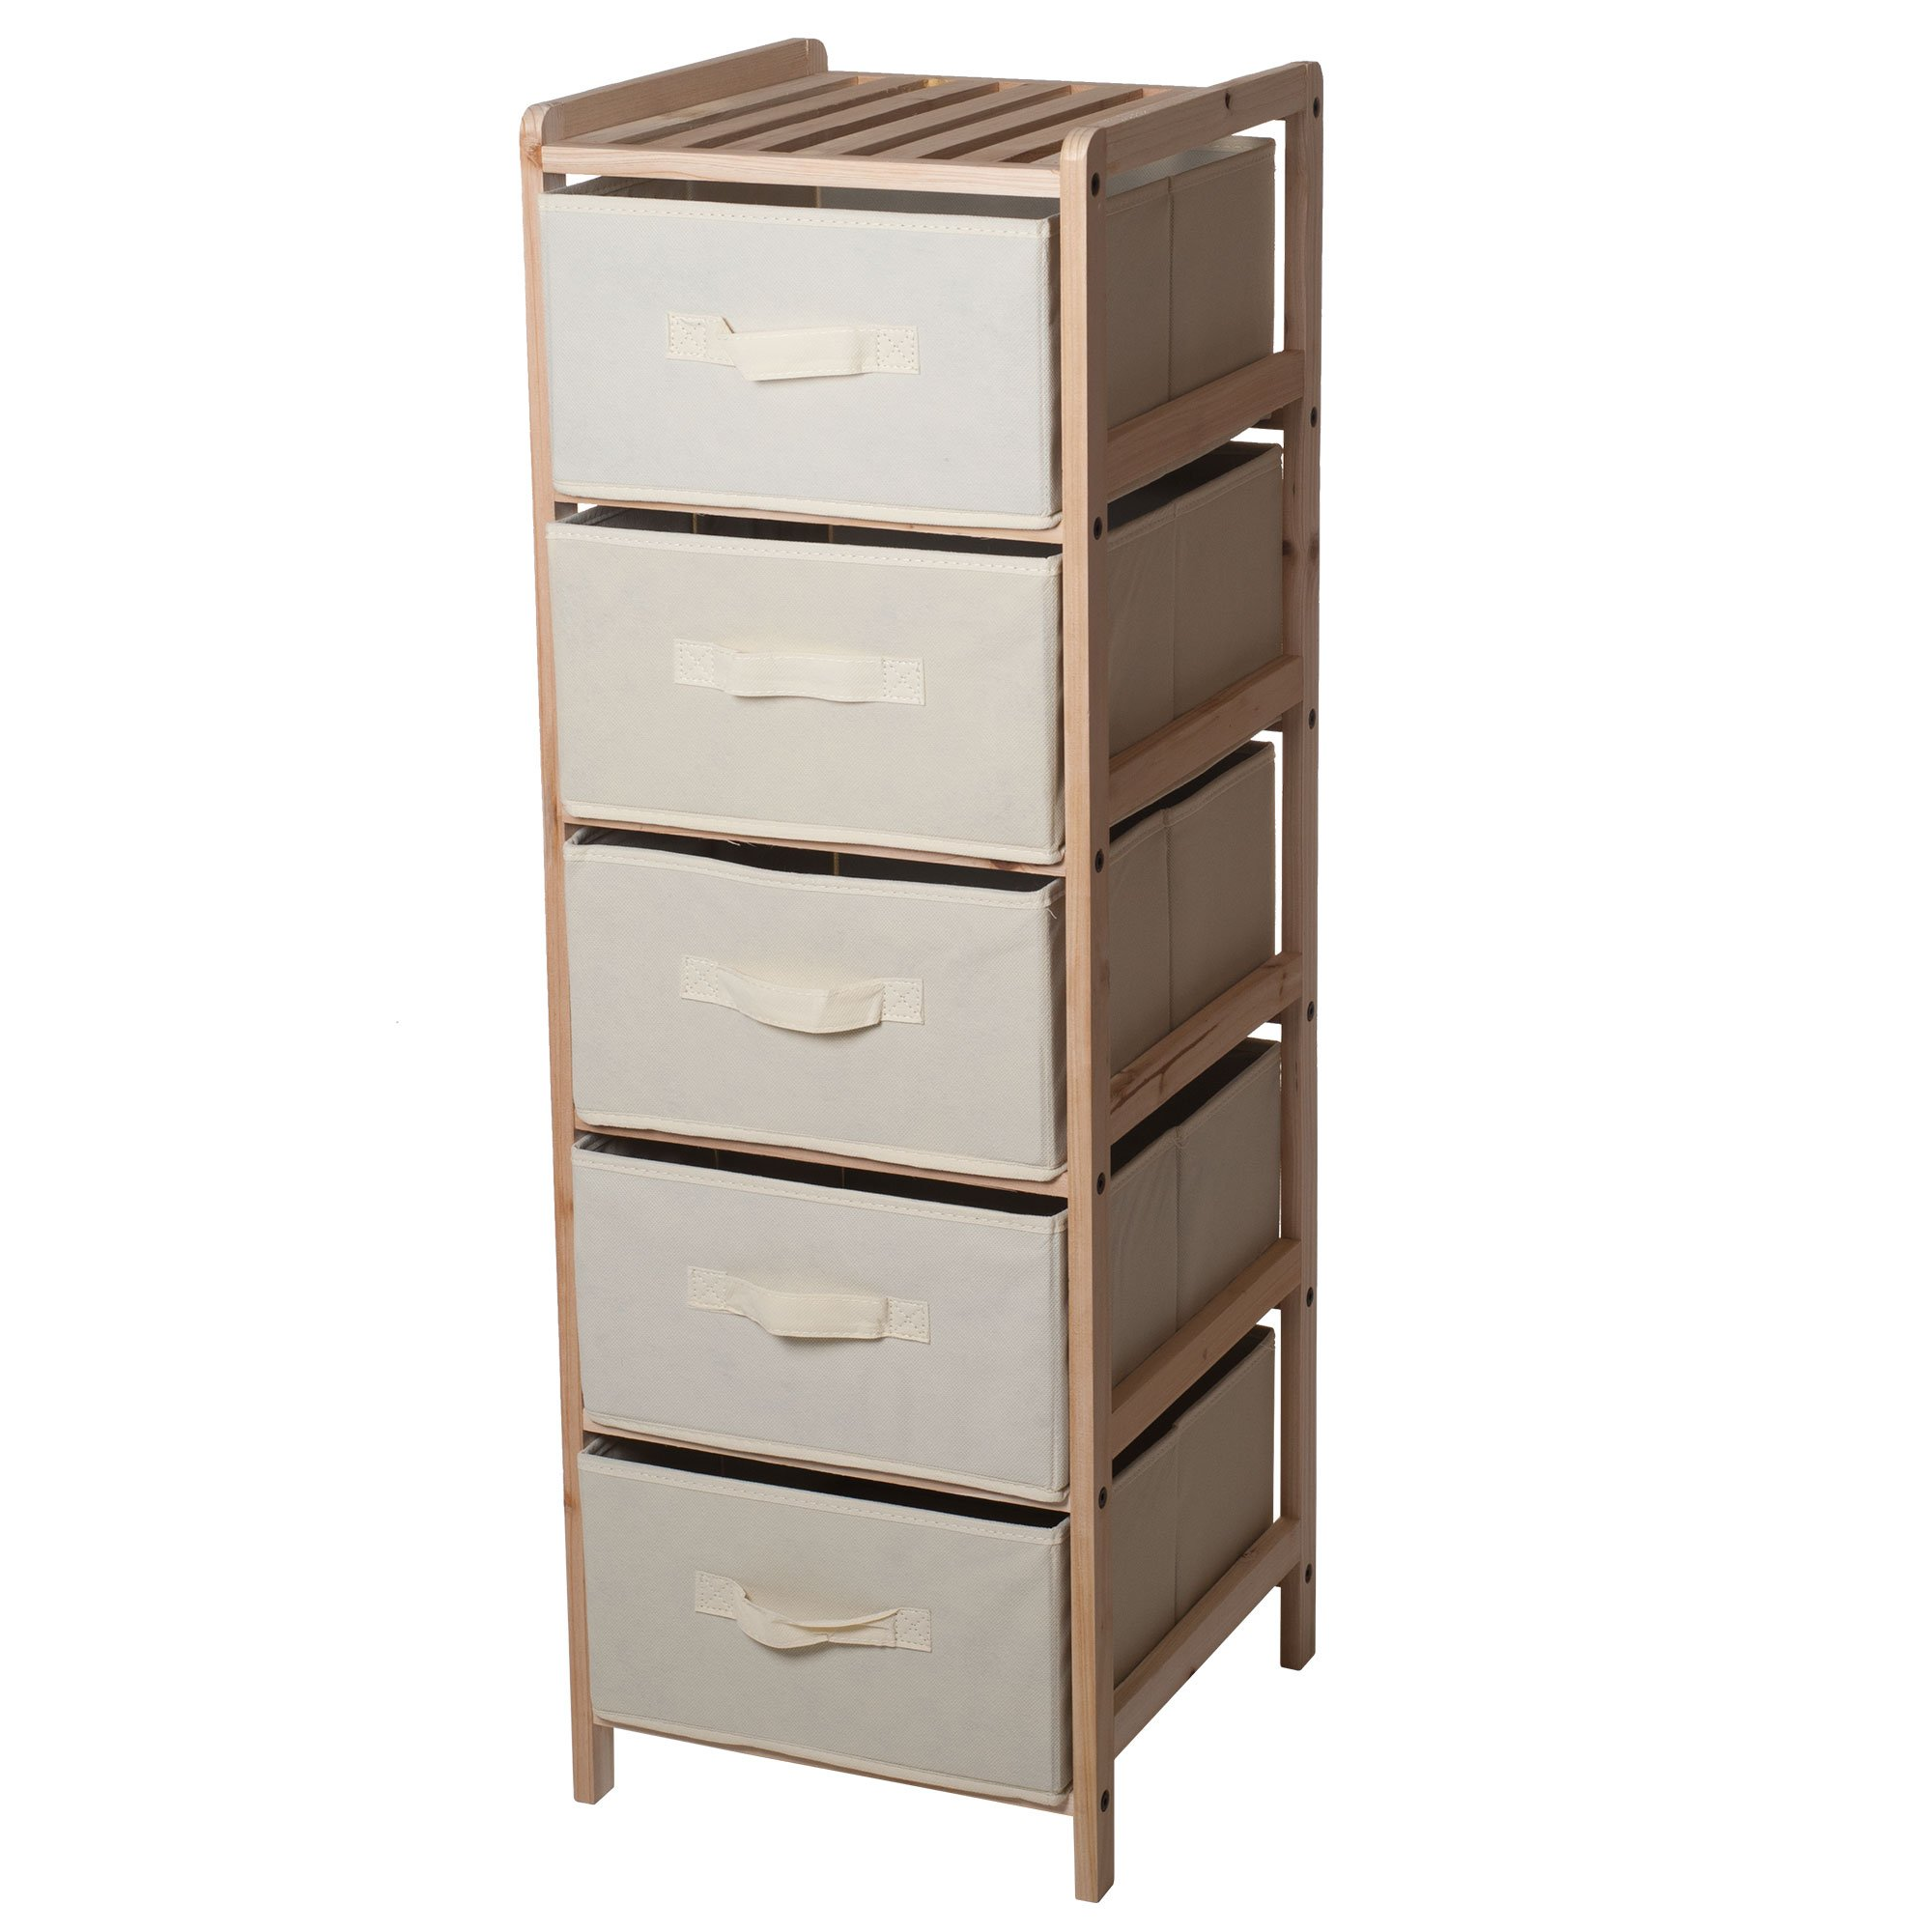 Lavish Home Organization Drawers with Natural Wood Shelf and Five Fabric Storage Bins- Lightweight and Perfect for Dorms, Bathrooms or Bedrooms by Lavish Home